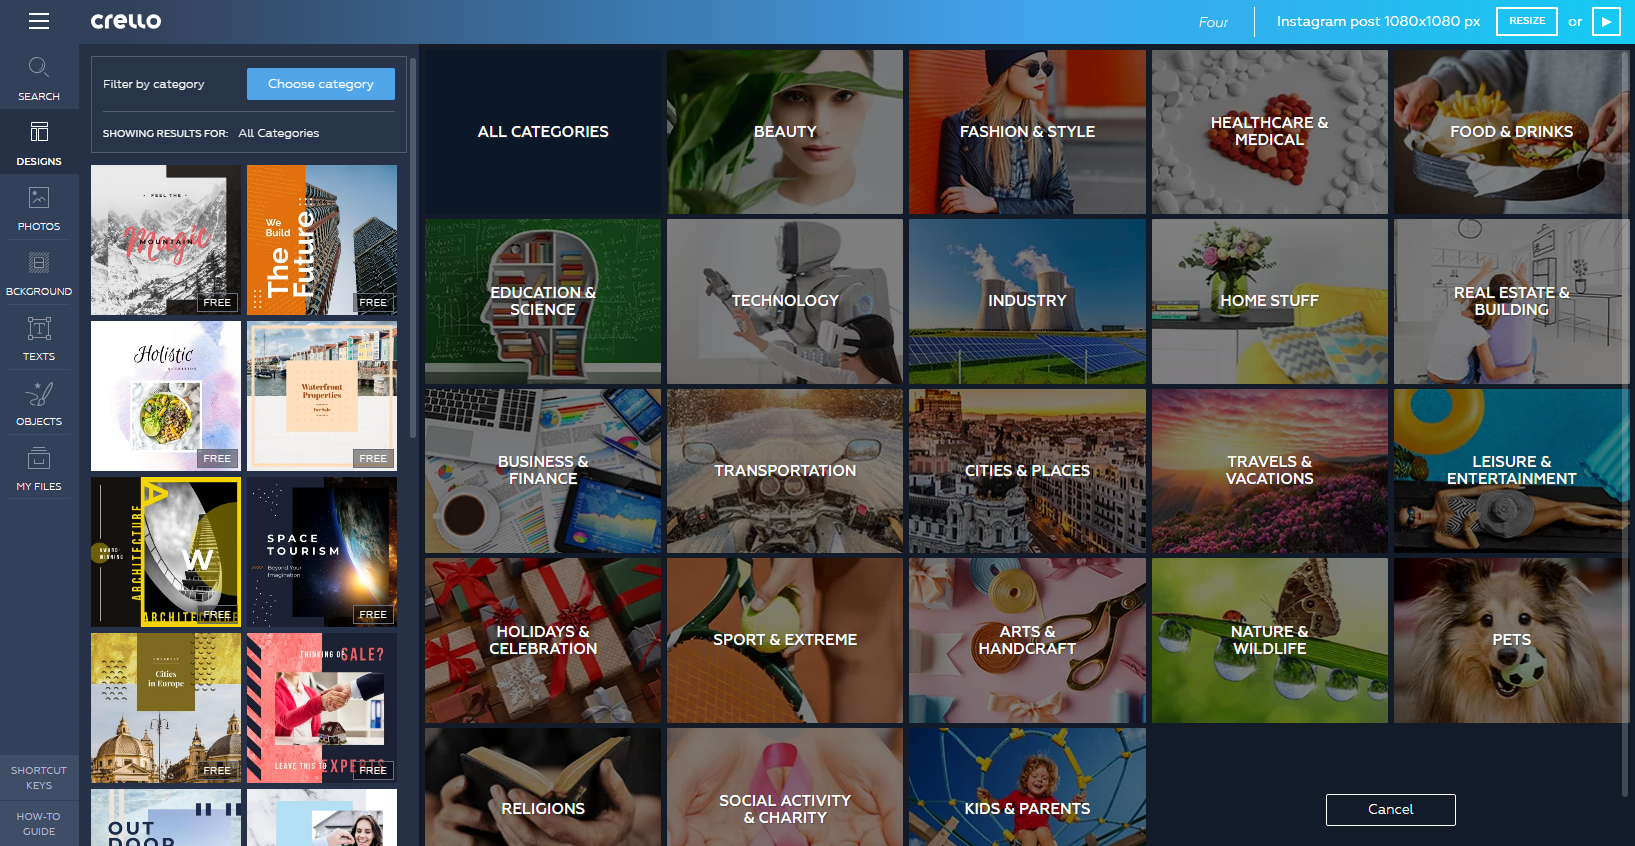 image and template categories in online graphic design tool crello